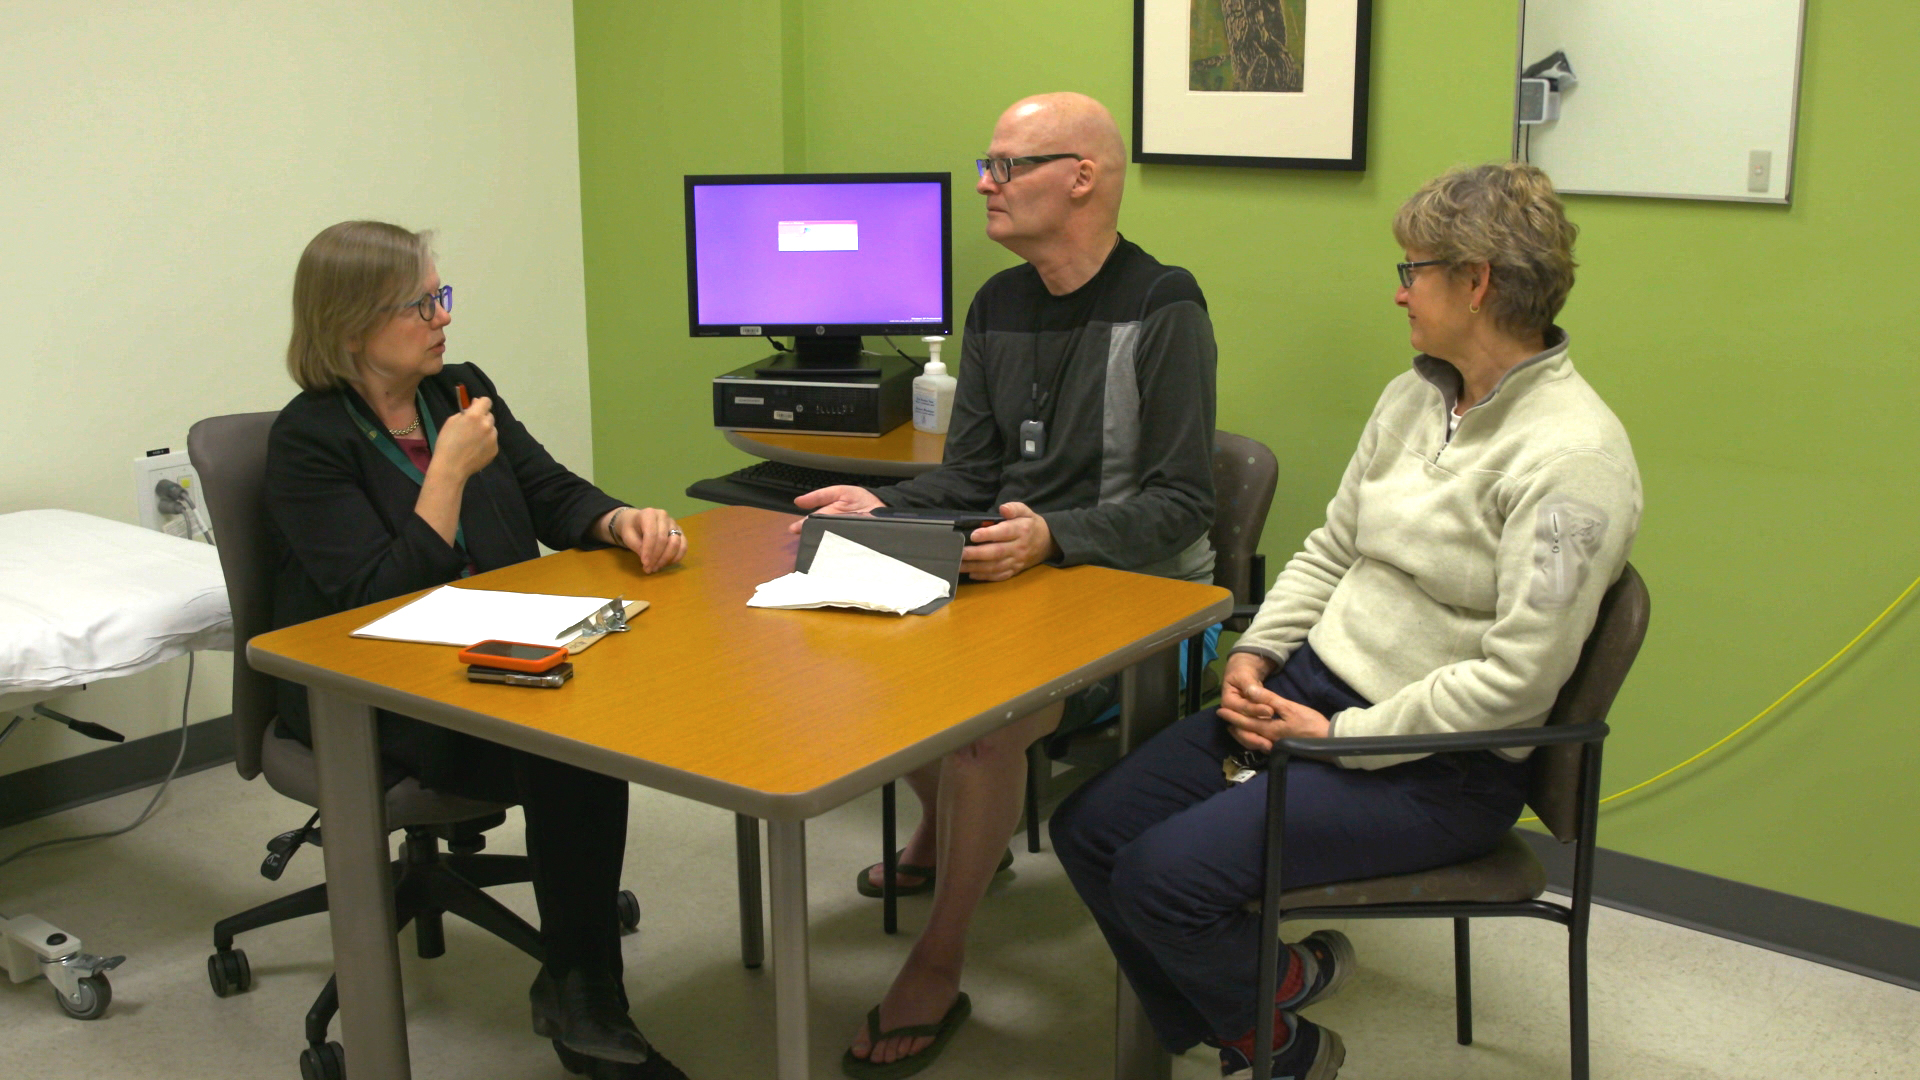 L to R:  Dr. Wendy Johnston, John Tuckwell, ALS patient and sister Cathy Tuckwell